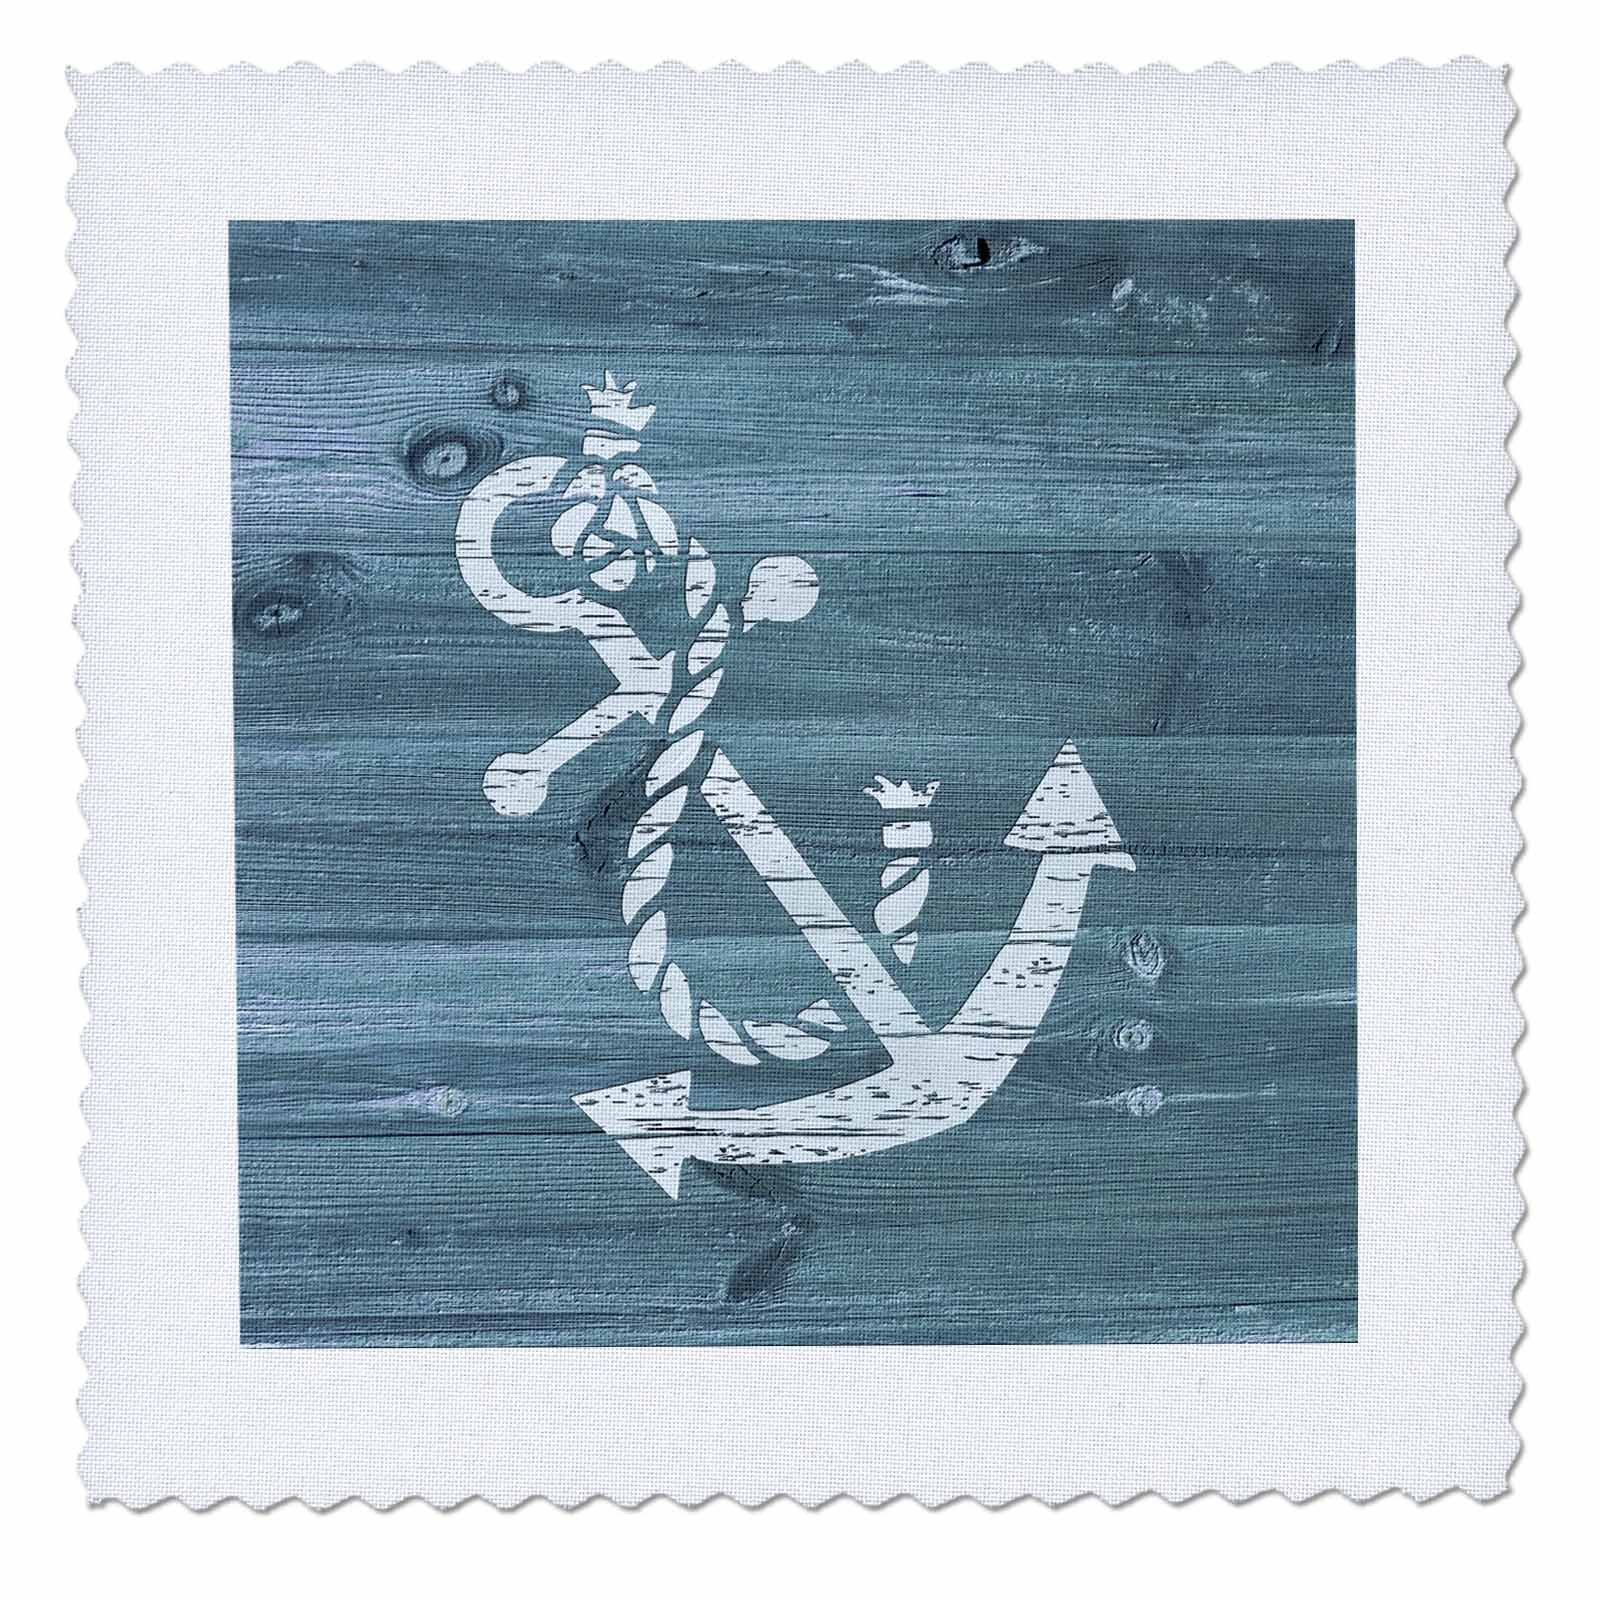 3dRose Russ Billington Nautical Designs - Distressed White Painted Anchor on Blue Wood Effect- Not Real Wood - 22x22 inch quilt square (qs_261814_9)